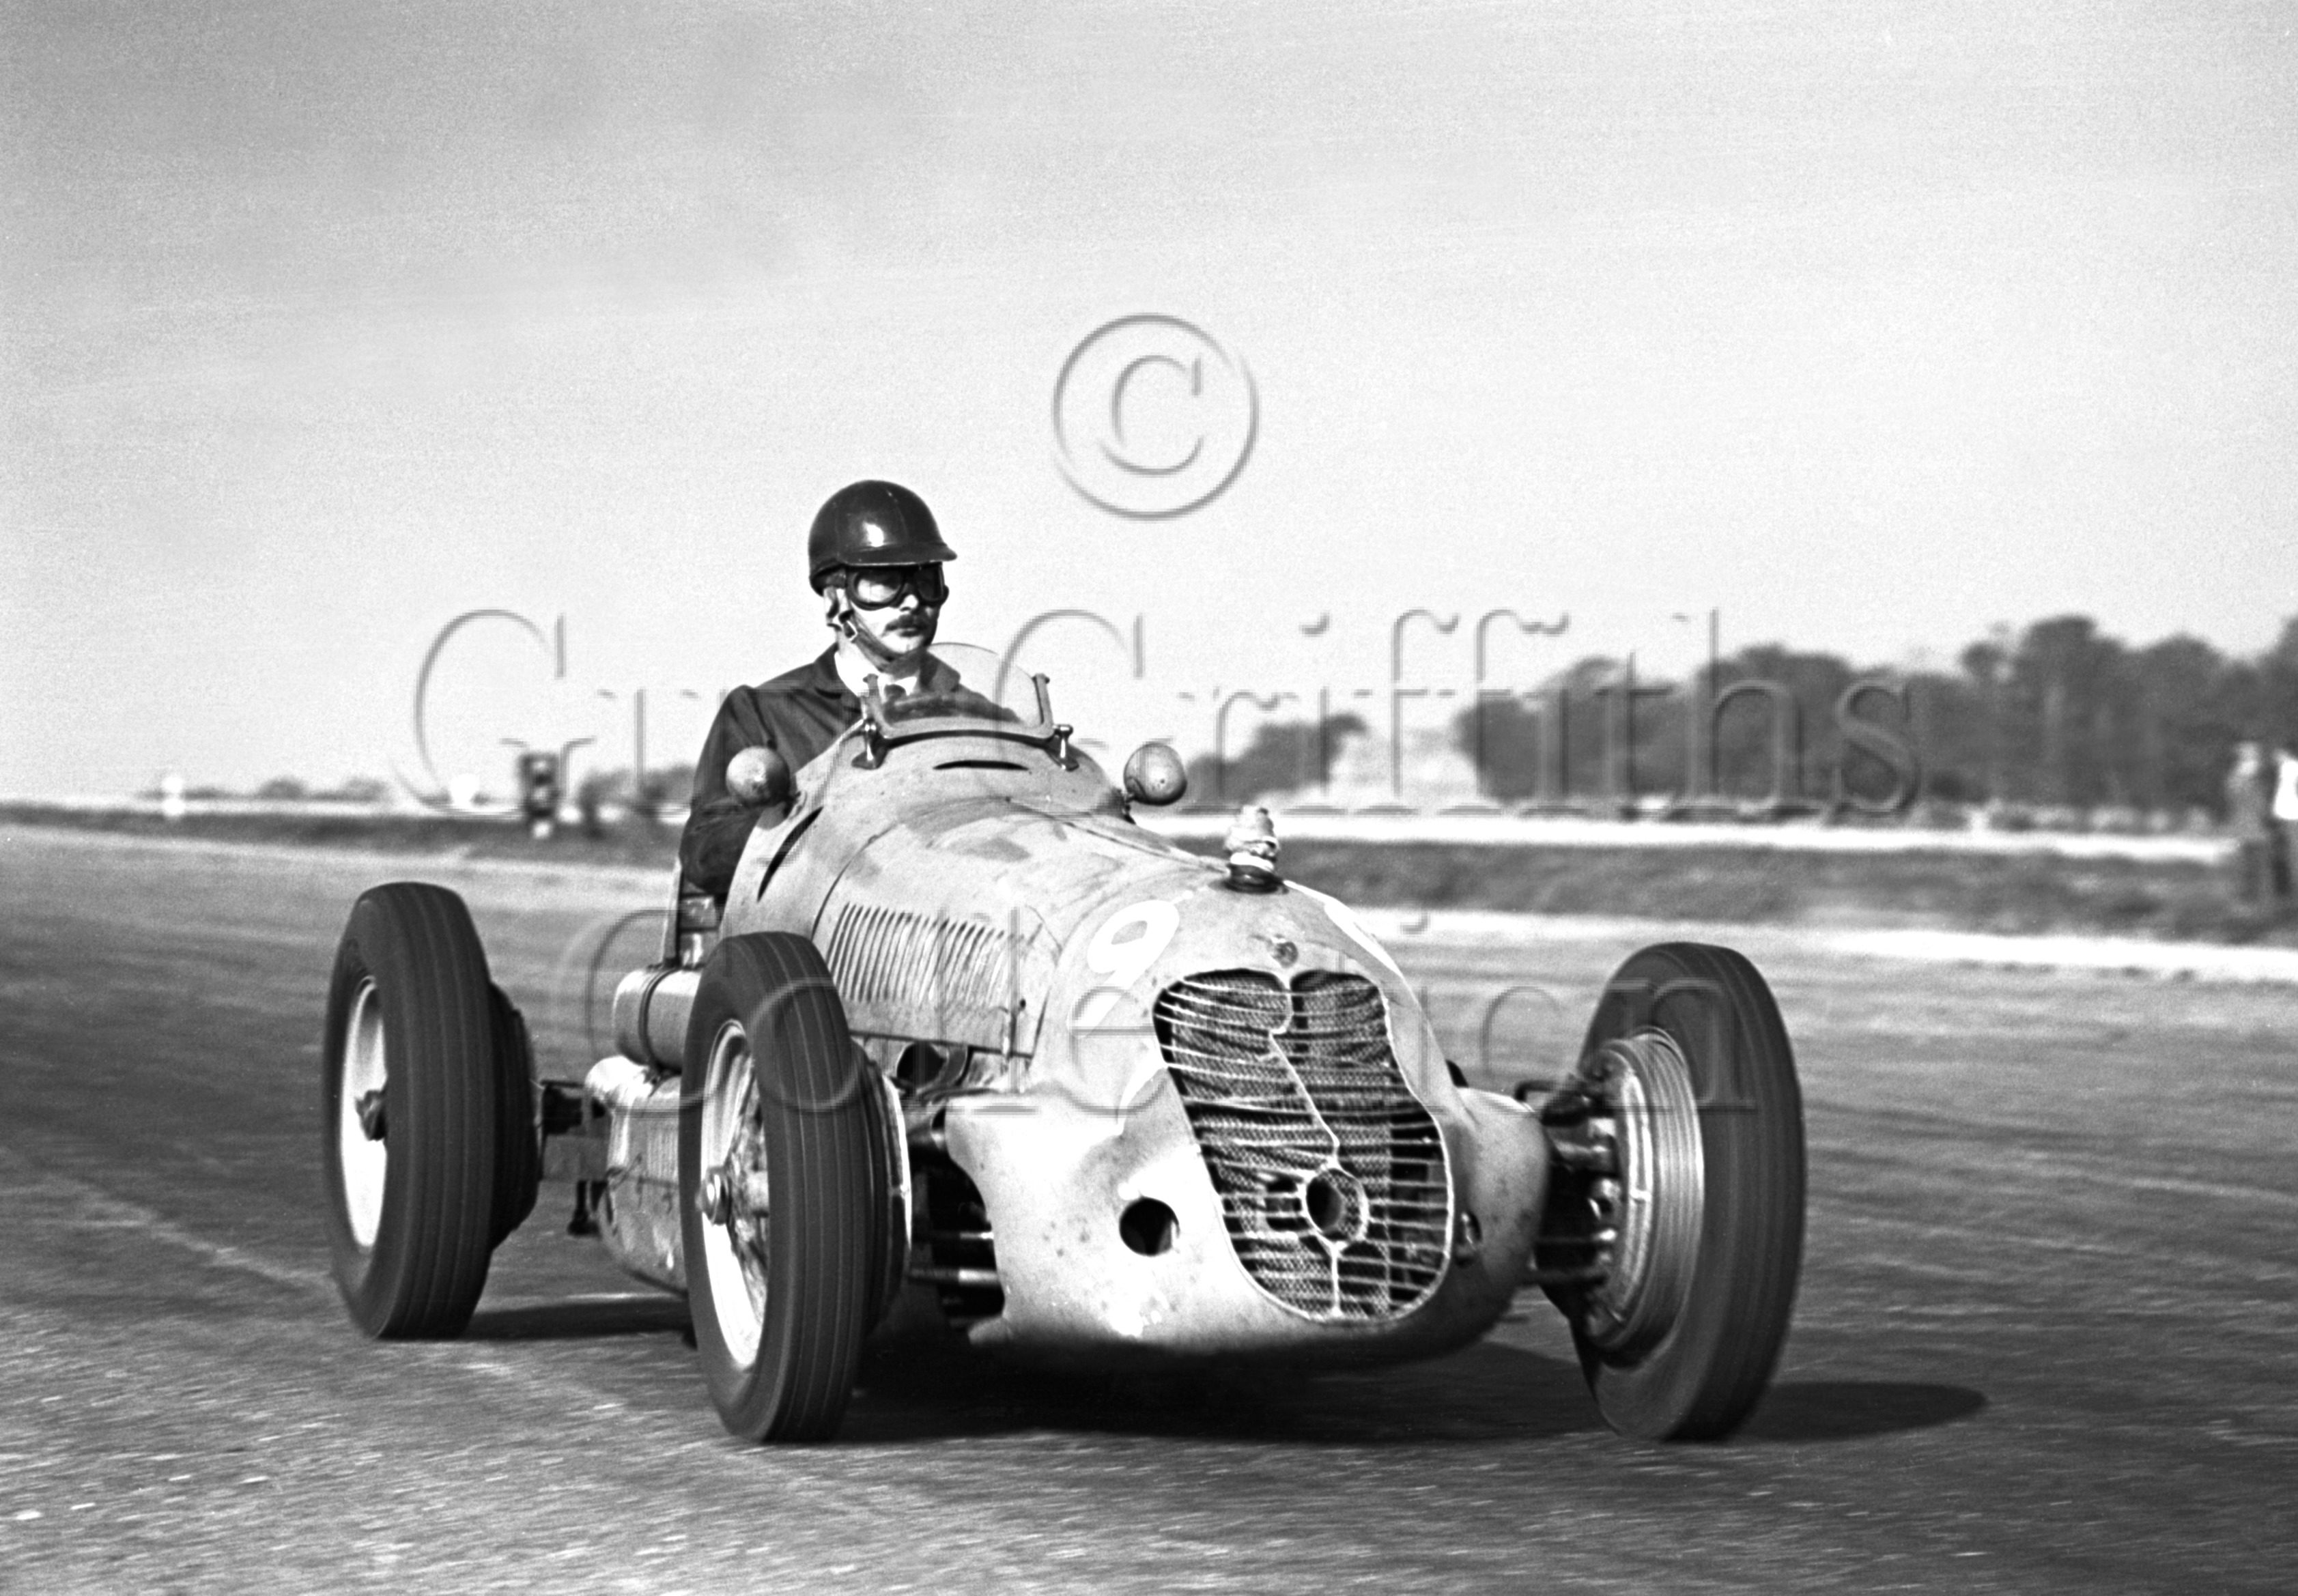 9-61–G-H-Bainbridge–Maserati–Silverstone–02-10-1948.jpg - The Guy Griffiths Collection